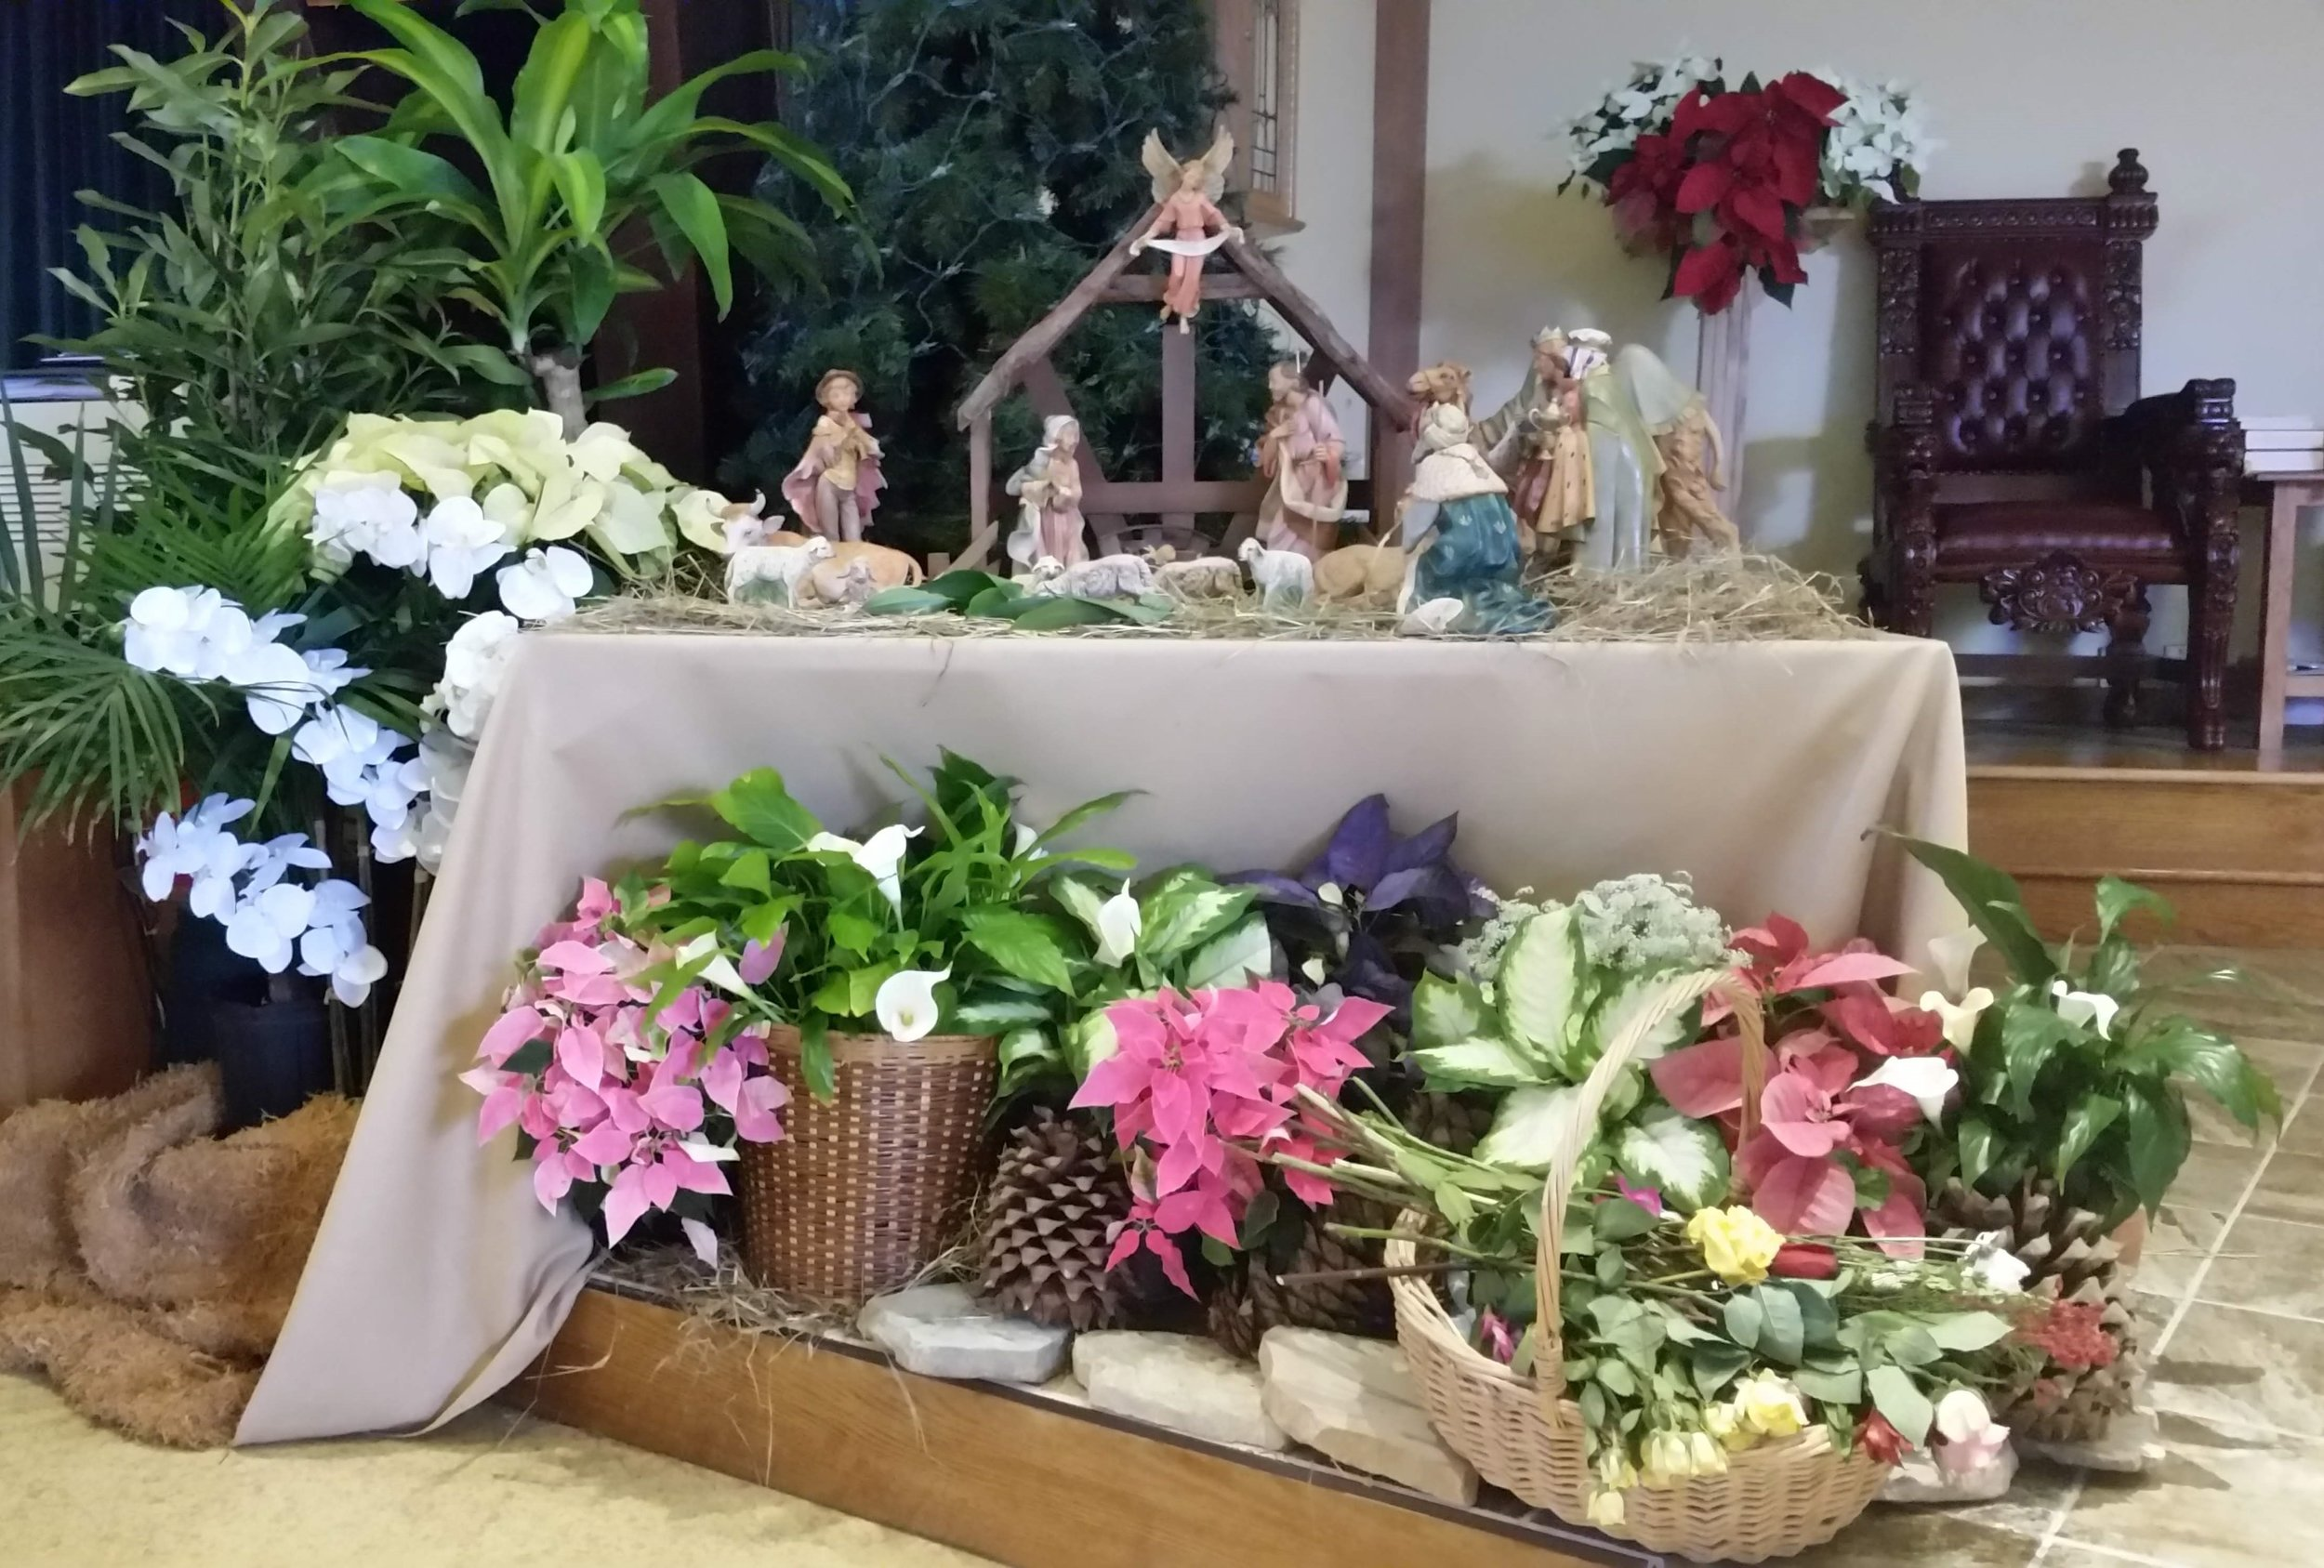 Creche display Christmas 2018 Our Lady of Mount Carmel Swartswood